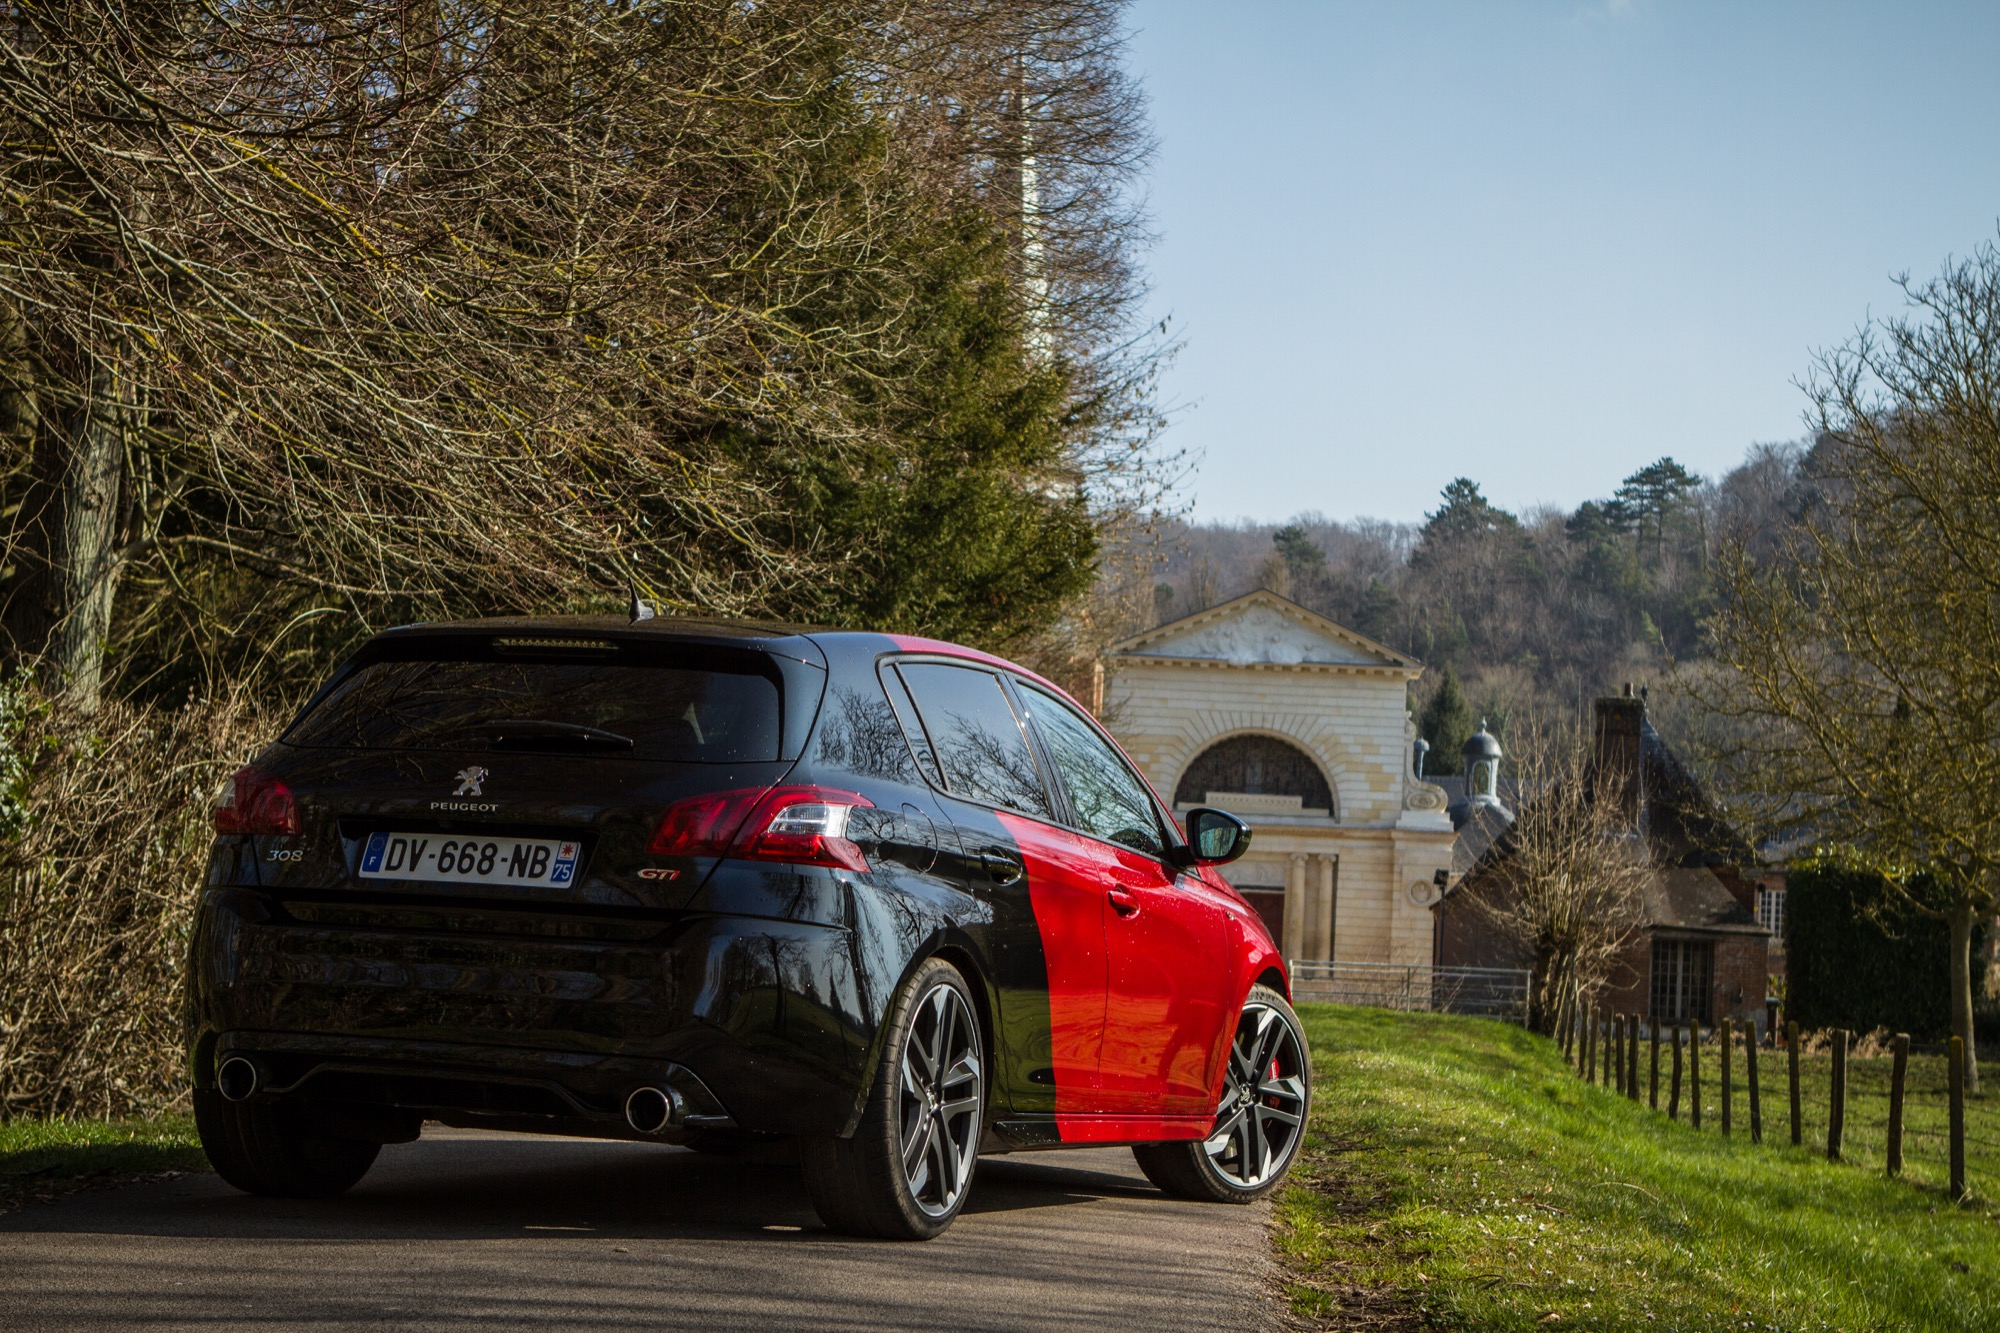 essai peugeot 308 gti sport exterieur 2 le blog de viinz. Black Bedroom Furniture Sets. Home Design Ideas